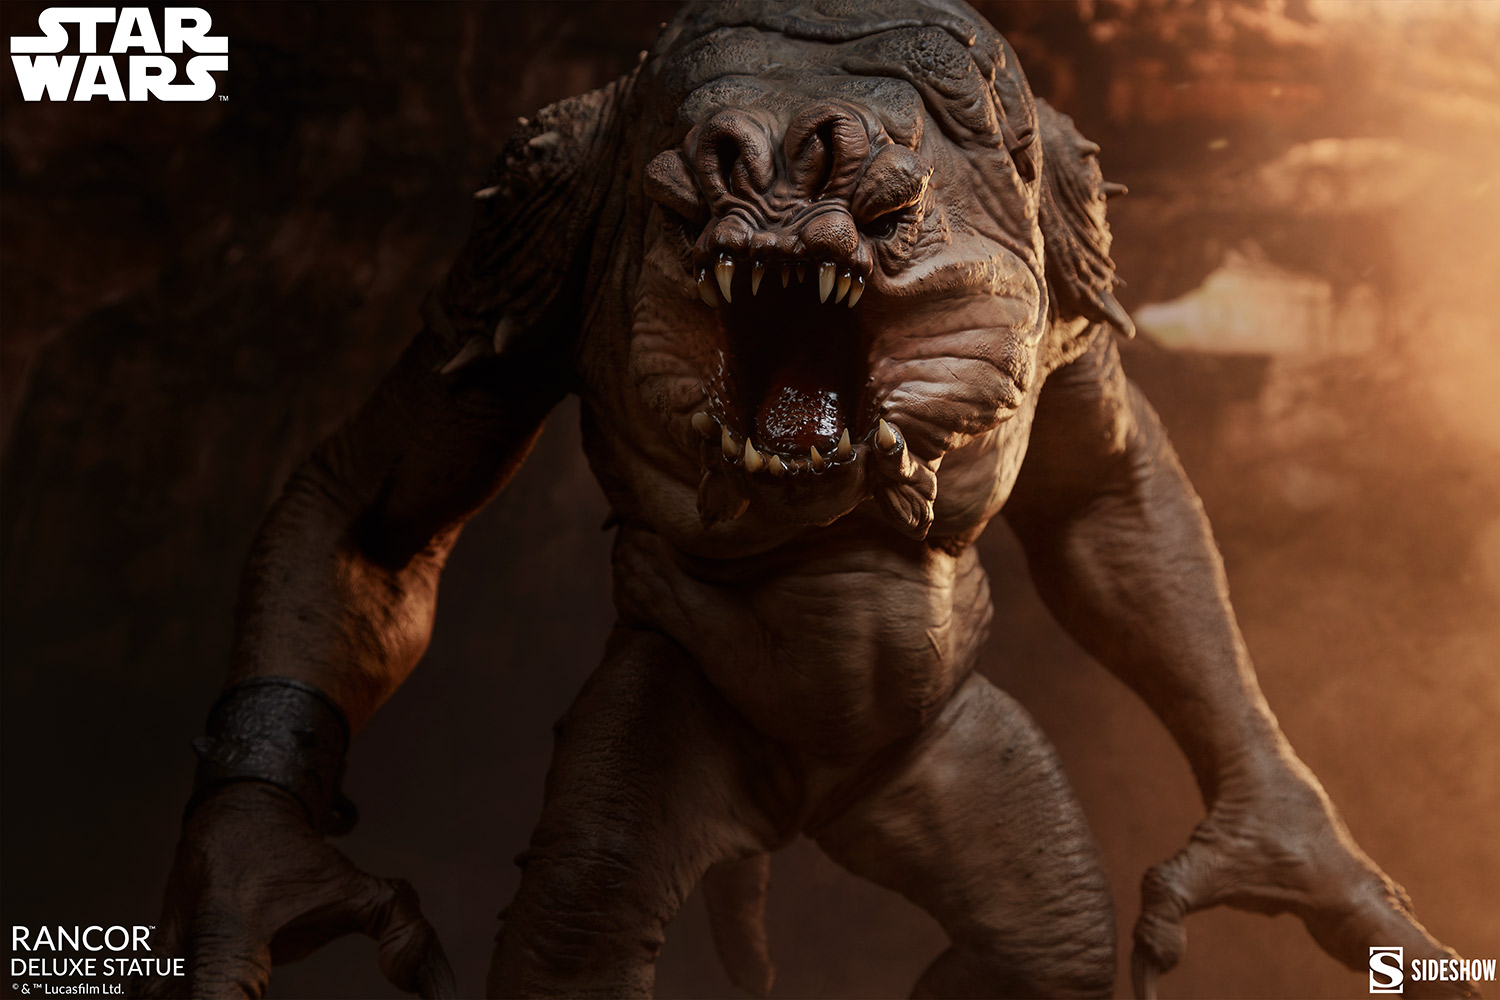 Link a Rancor-Deluxe-Statue-Star-Wars-collectibles-Theater-5